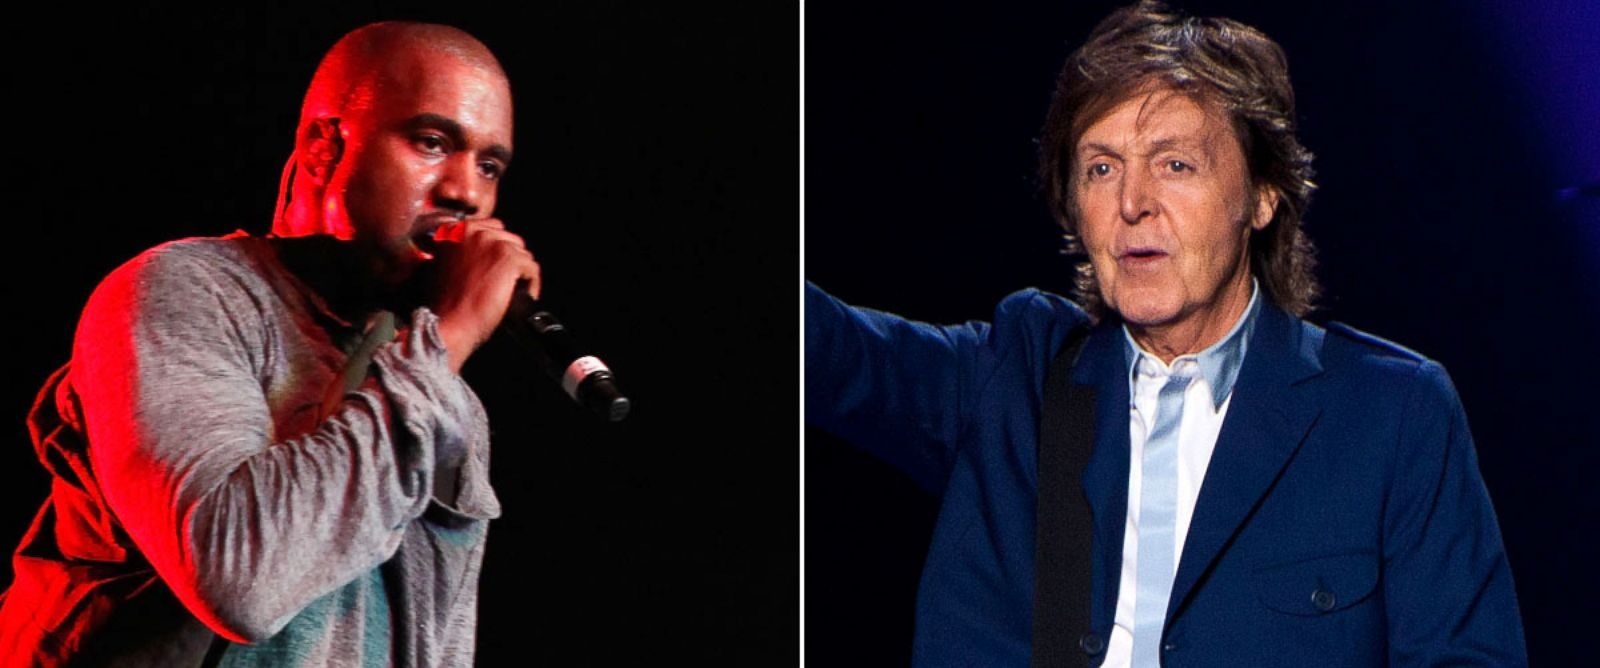 PHOTO: From left, Kanye West in New York, June 9, 2013 and Paul McCartney in Atlanta, Oct. 15, 2014.